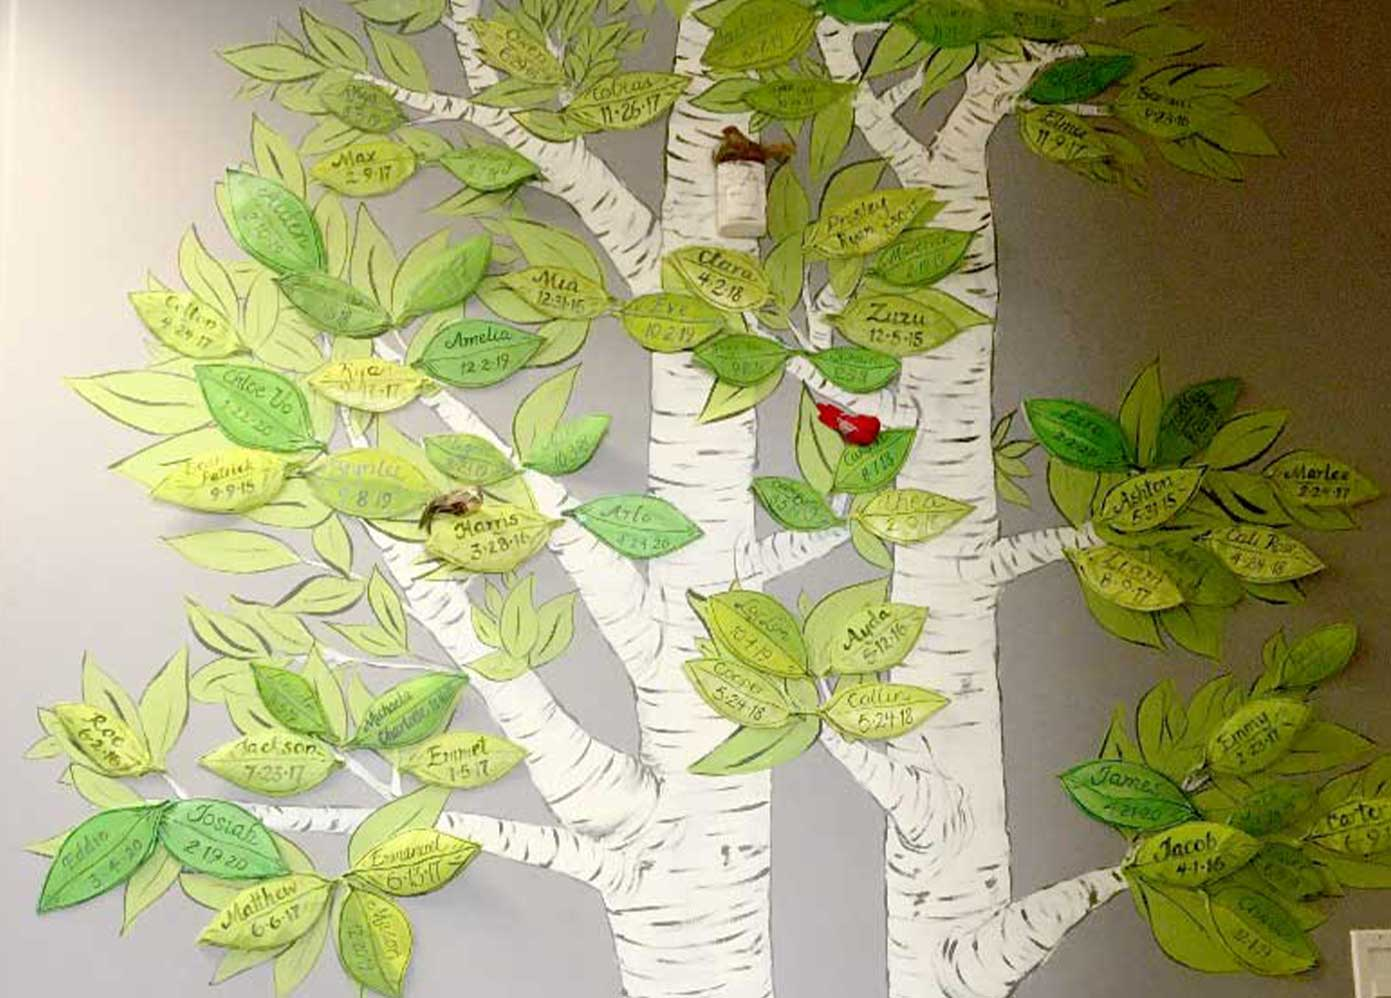 Milk Bank Bereavement Tree with Babies names on leaves